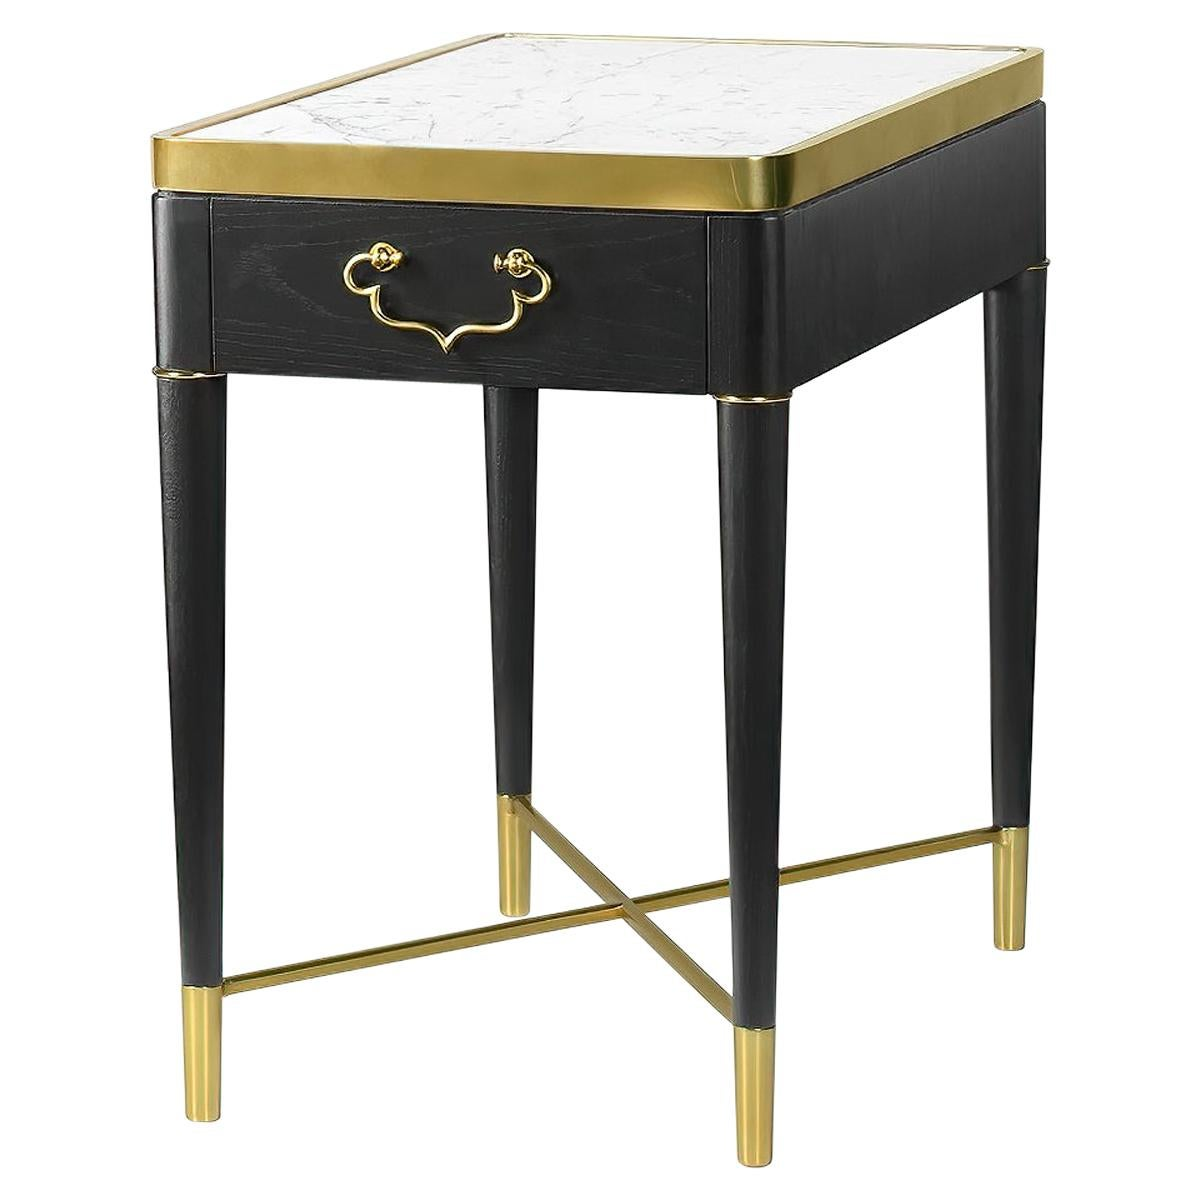 Midcentury Style Marble-Top Side Table